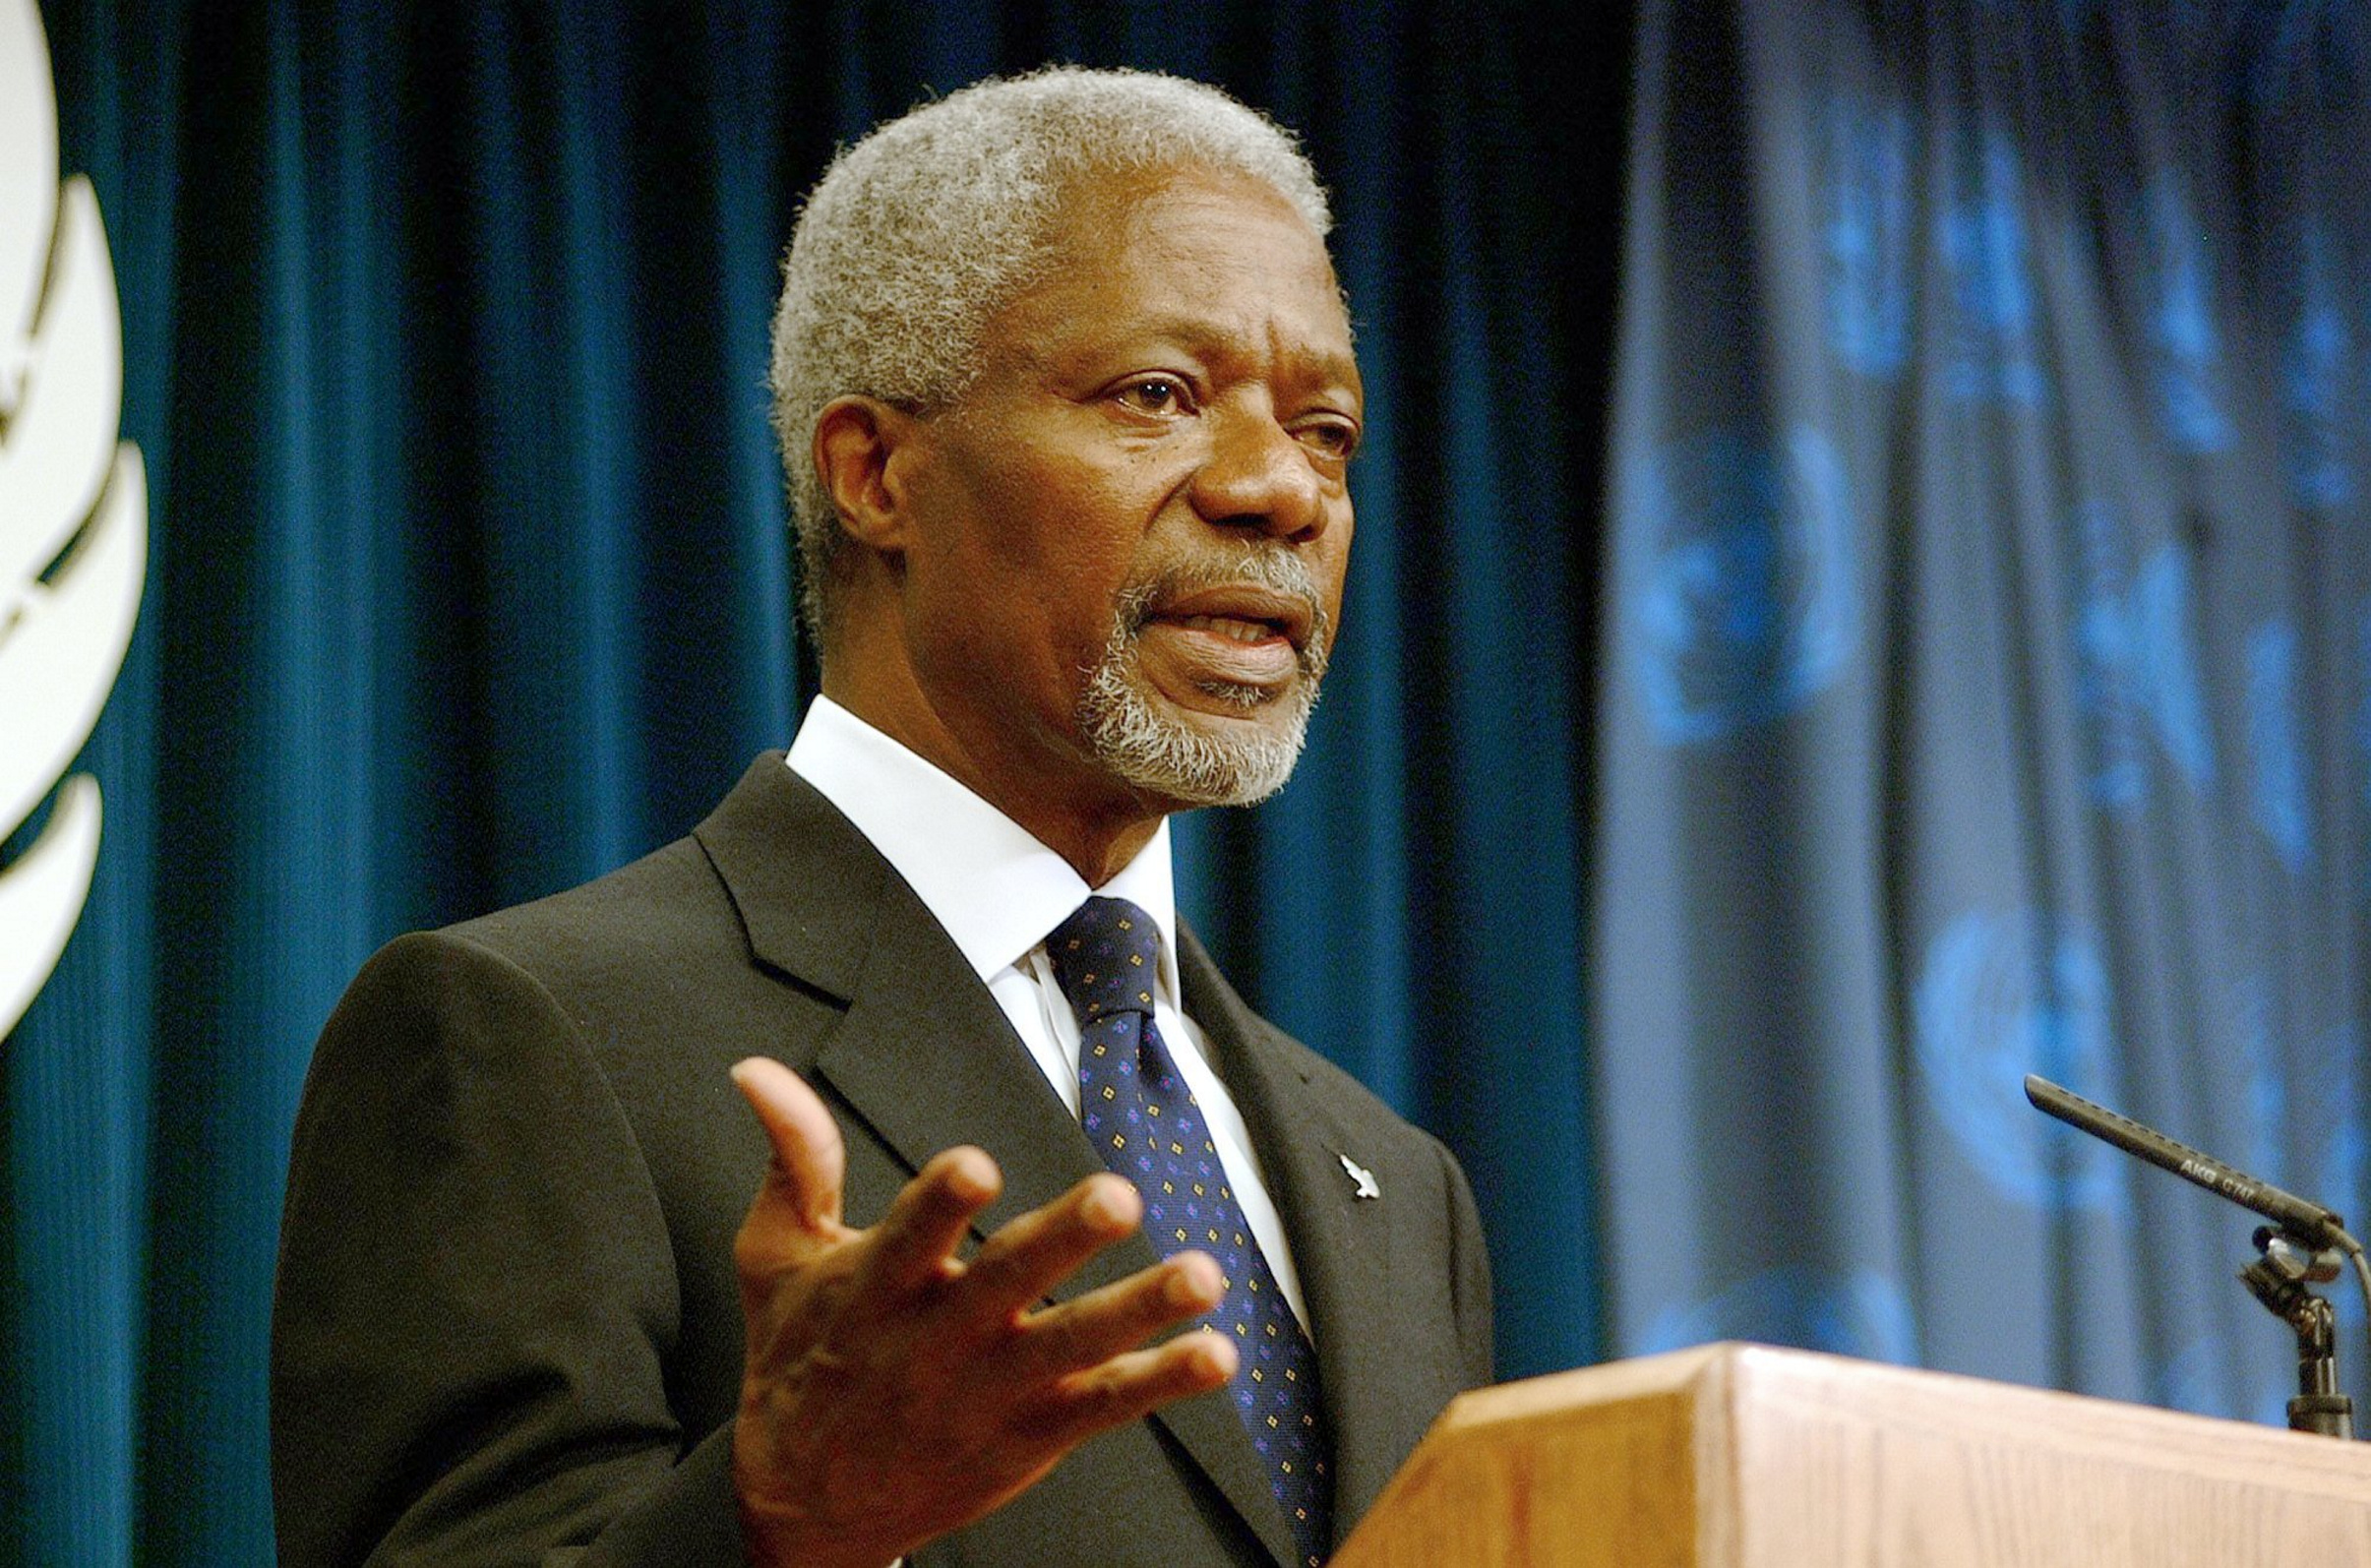 Kofi Annan: A Model Statesman for the World